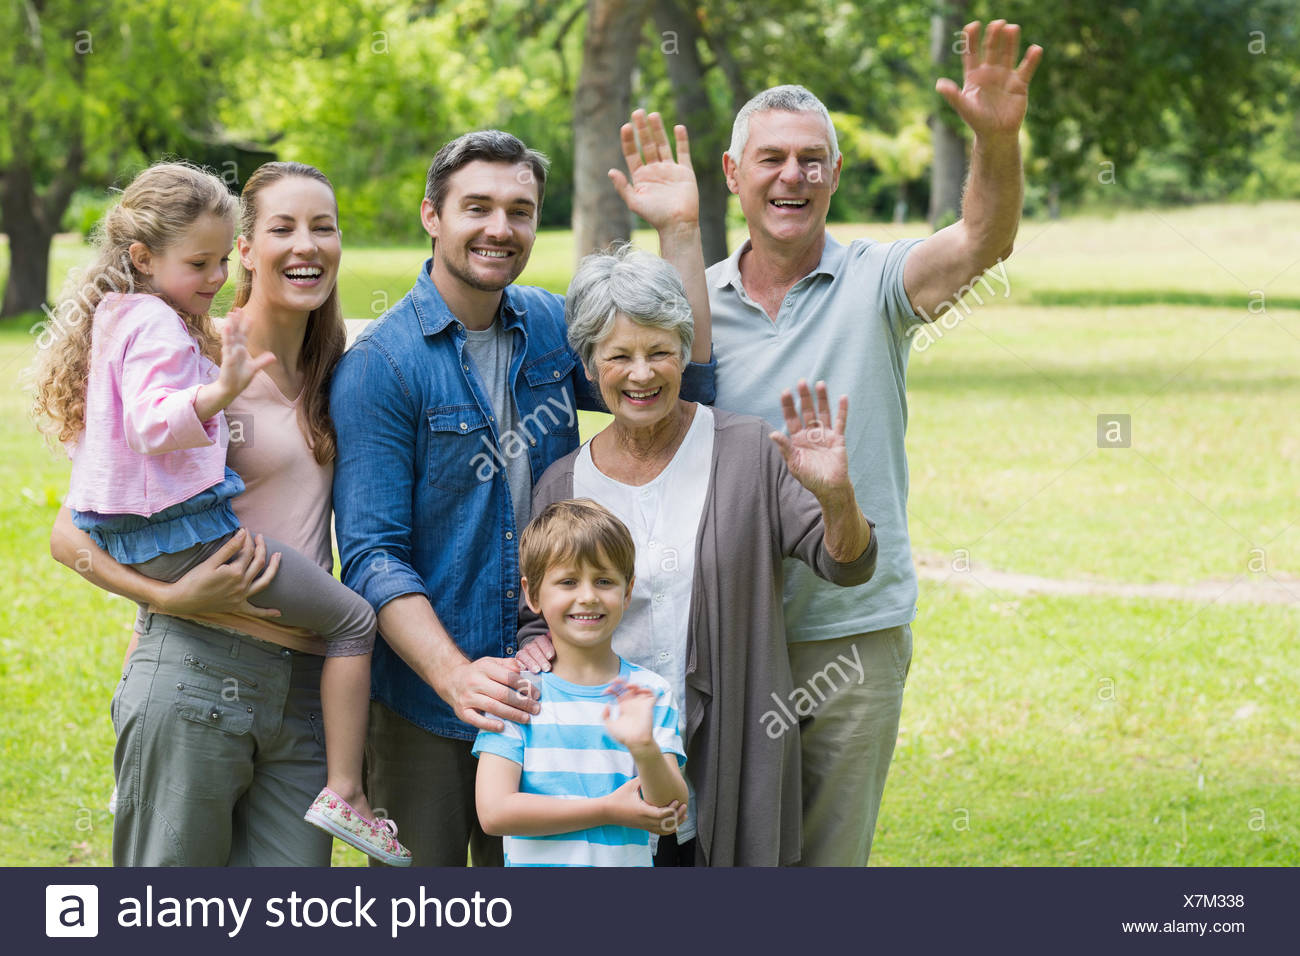 Happy extended family waving hands at park - Stock Image